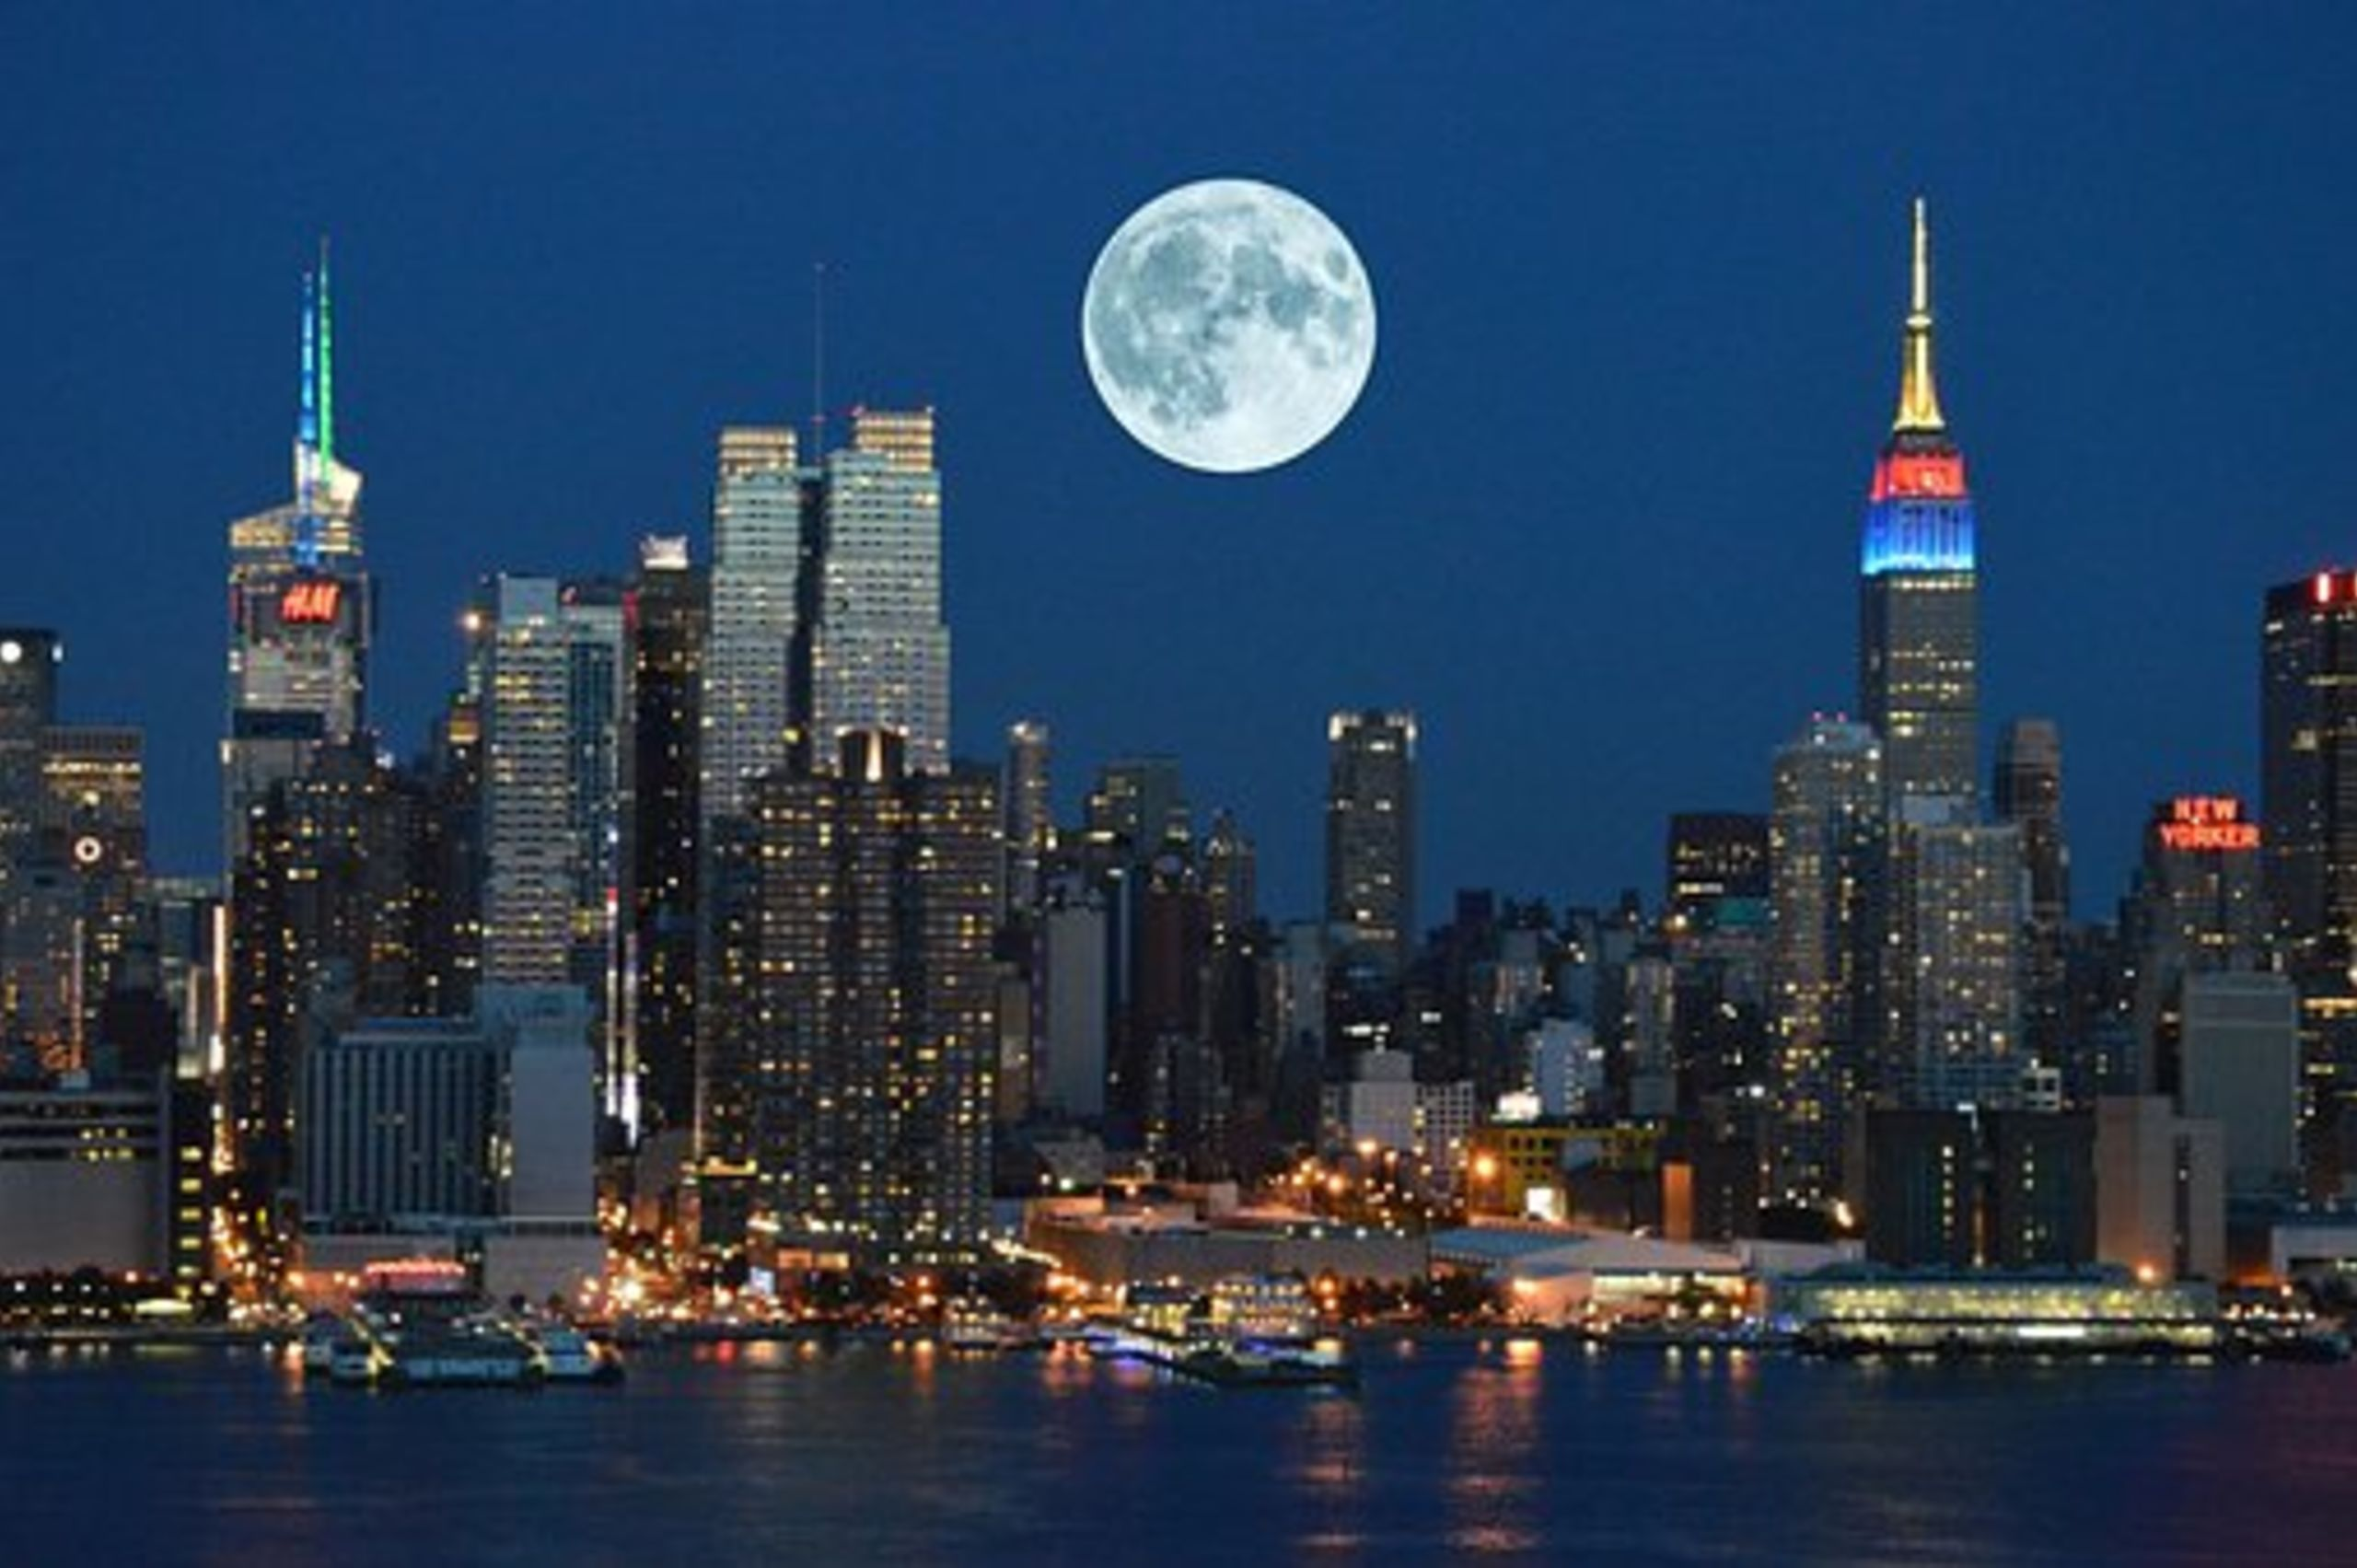 New York-The City that never sleeps.